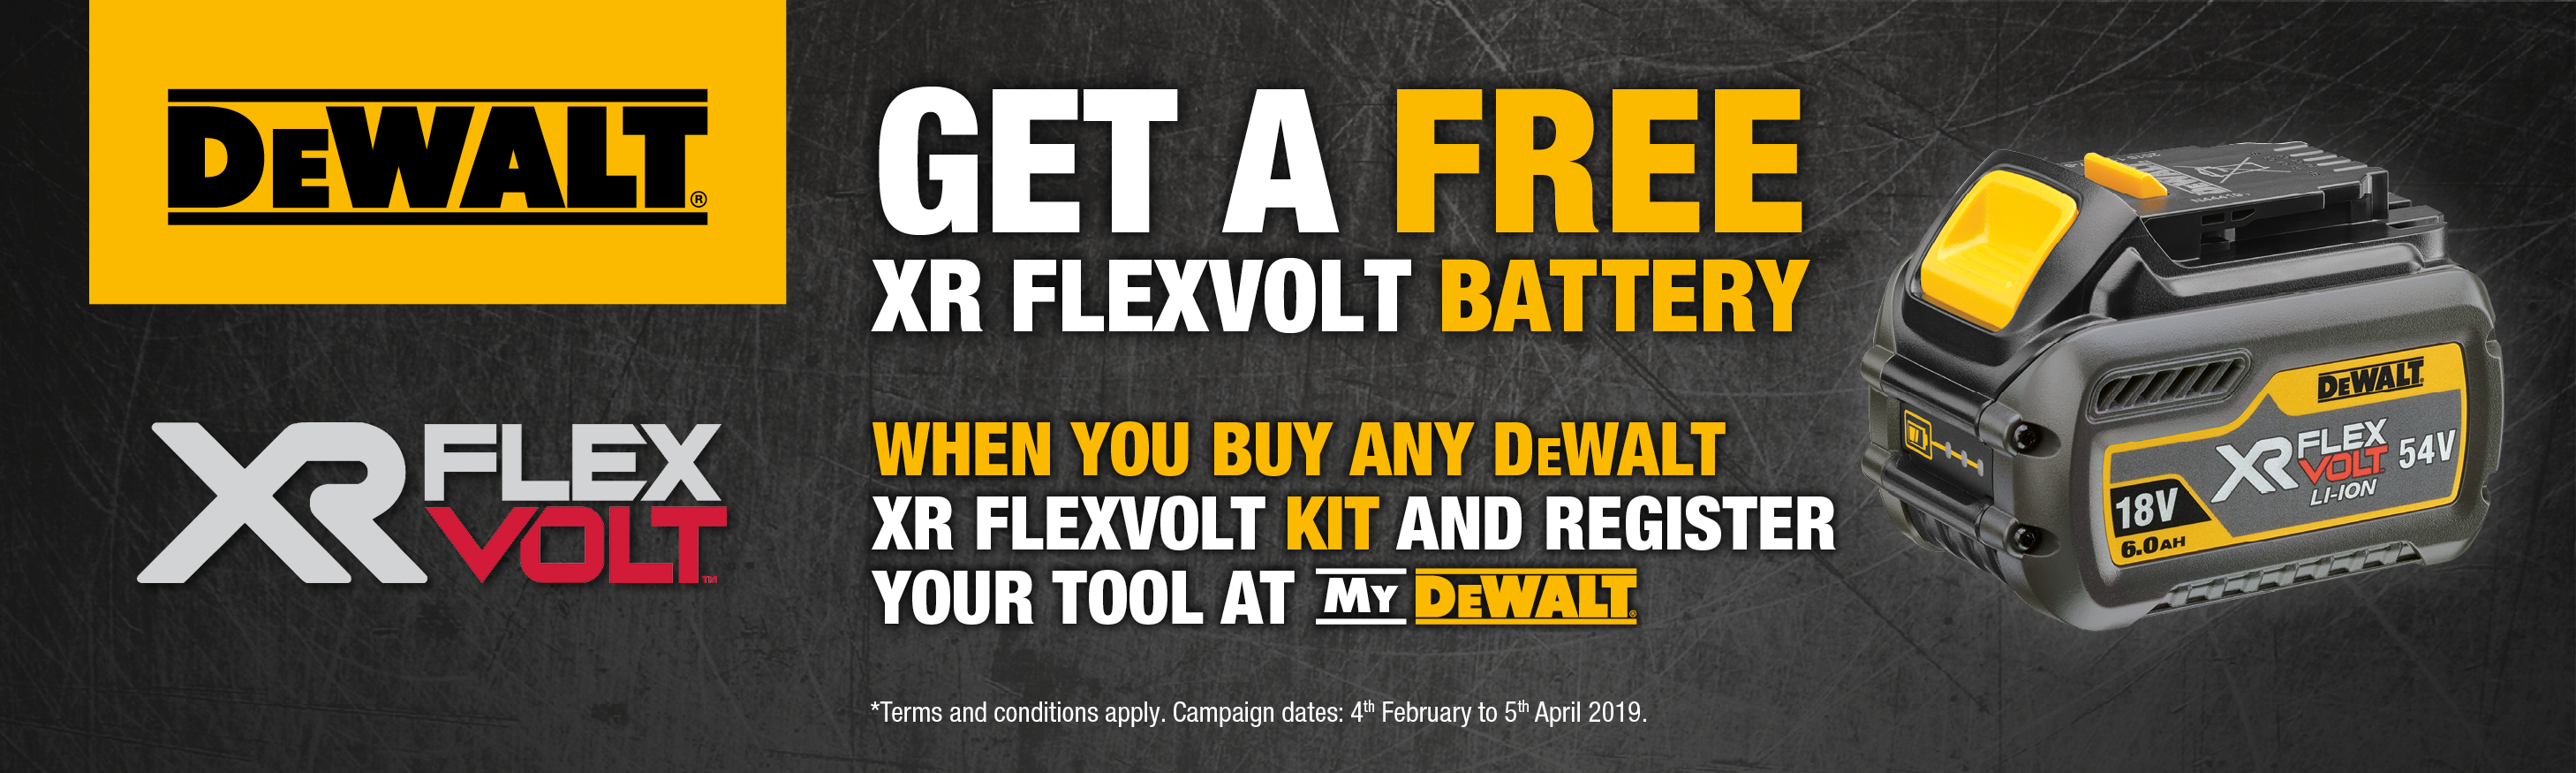 dewalt promotion, free battery, special offer, tool promotion, free tool